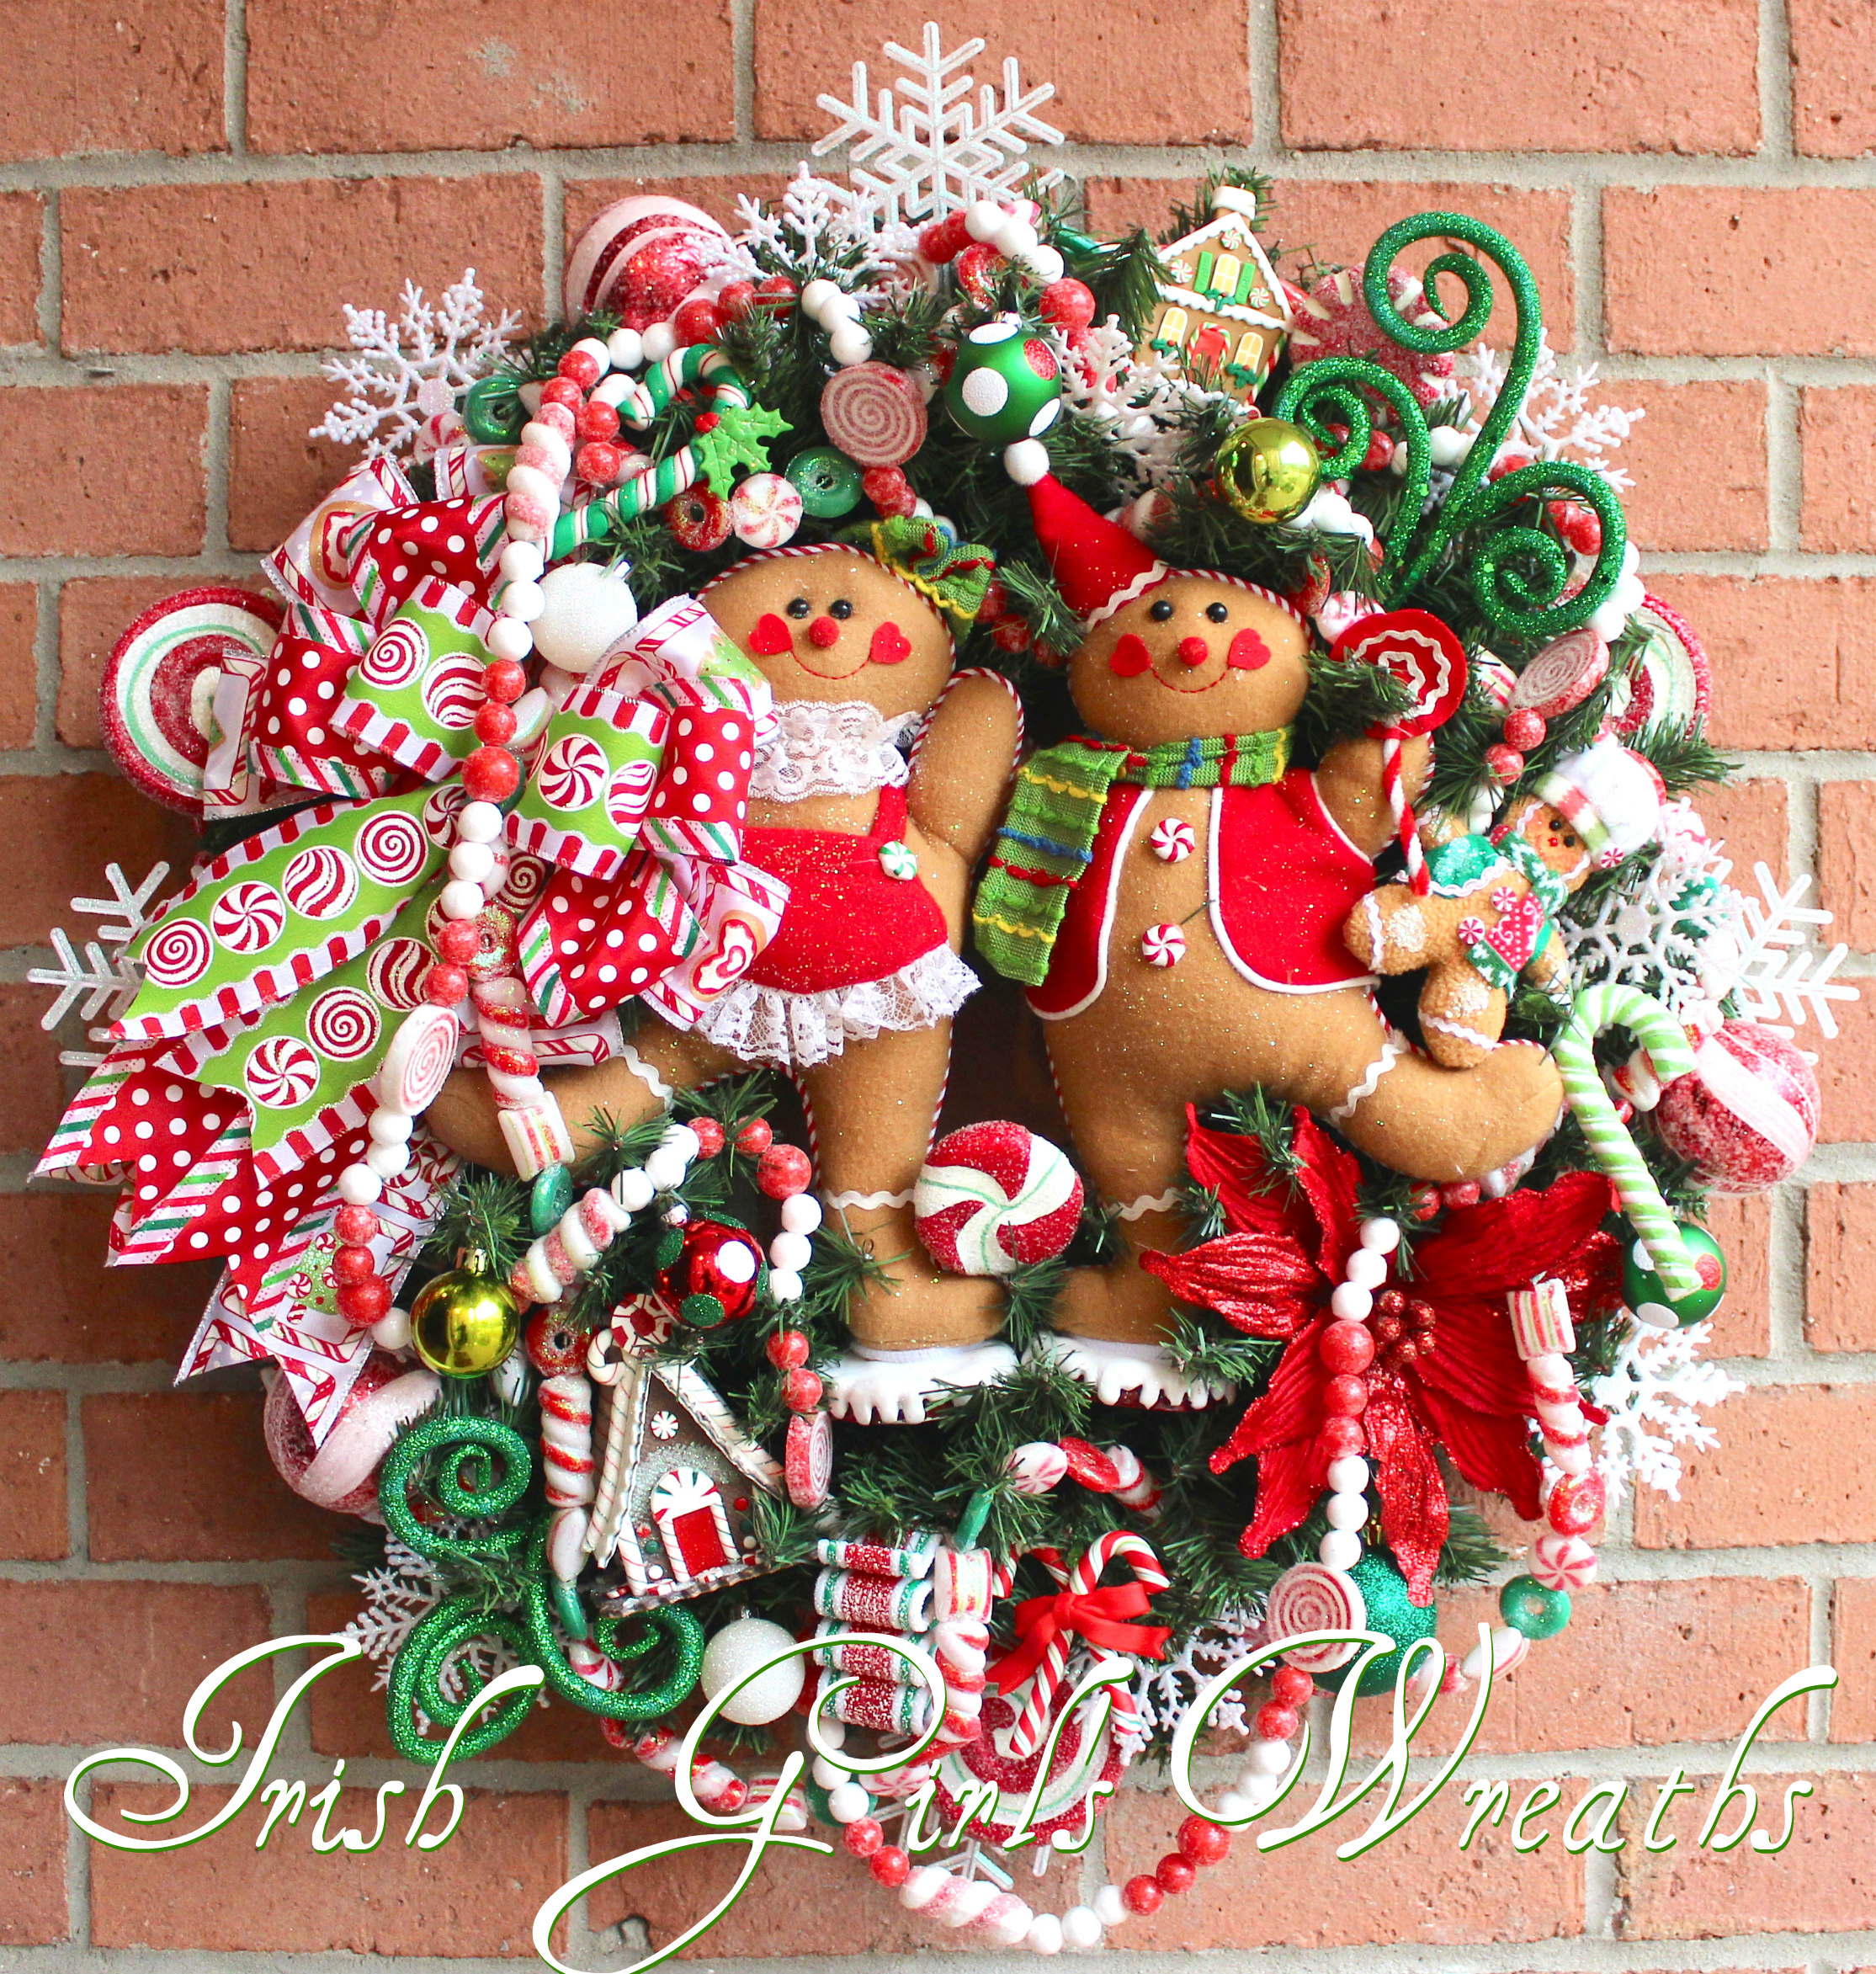 Fun Gingerbread Family Peppermint Candy Christmas Wreath